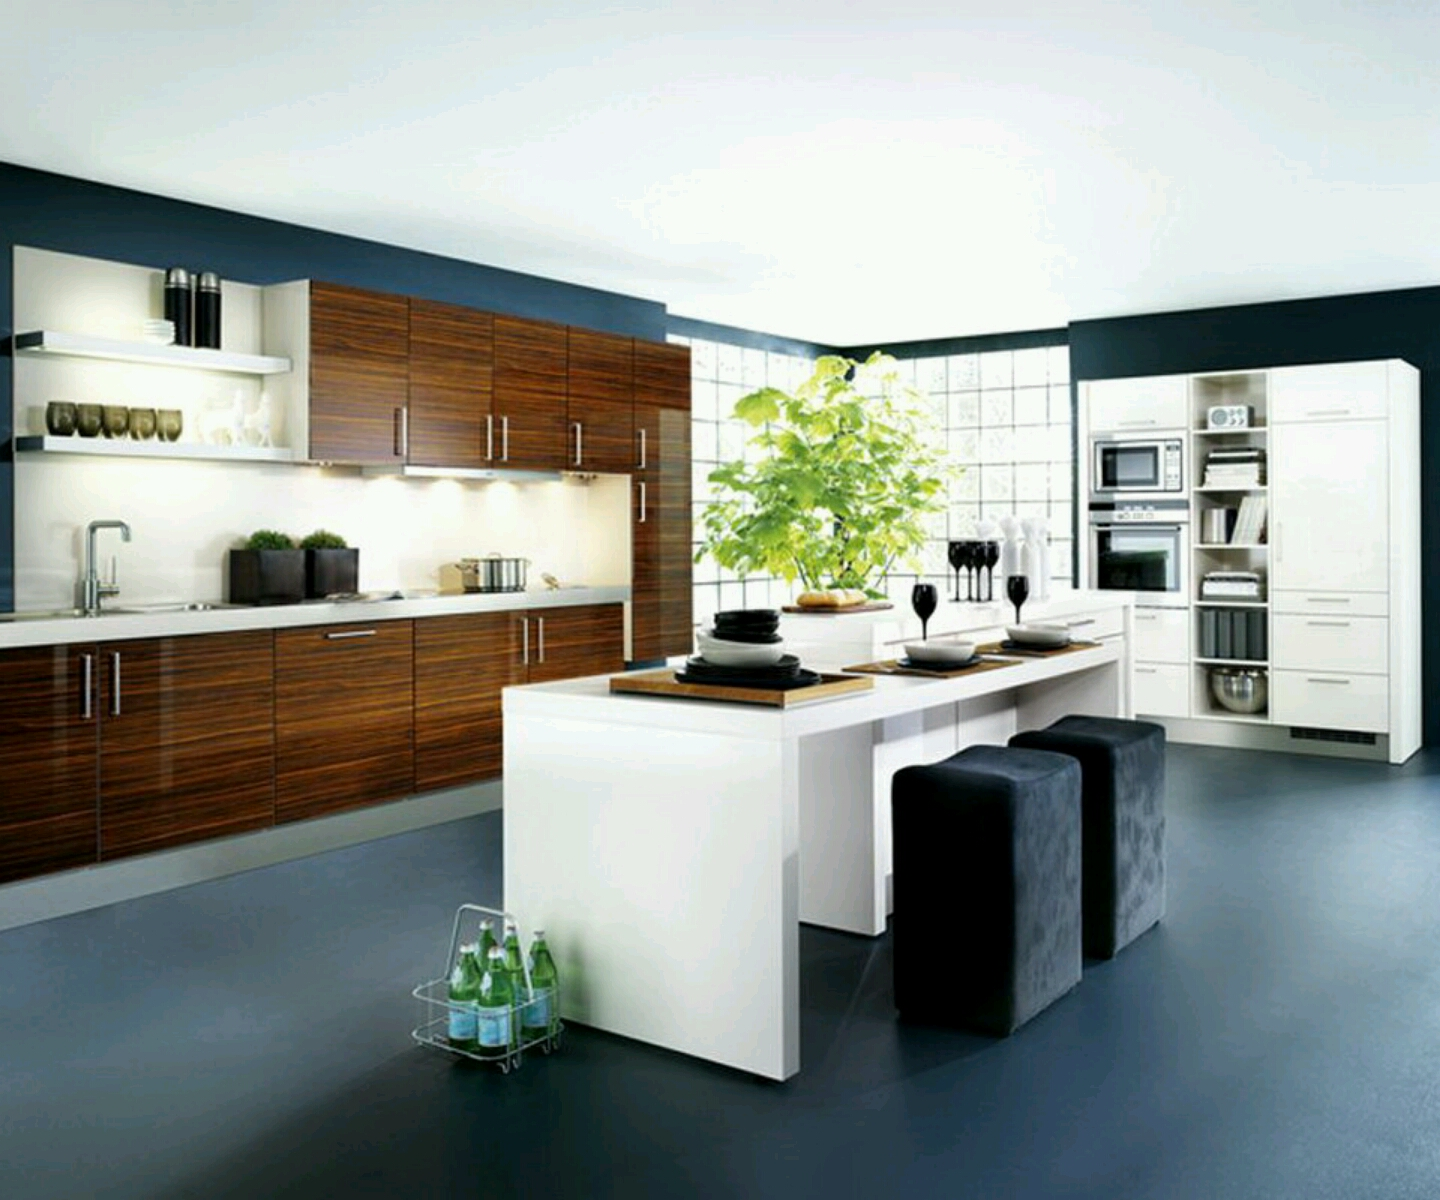 New home designs latest kitchen cabinets designs modern for Contemporary kitchen design ideas